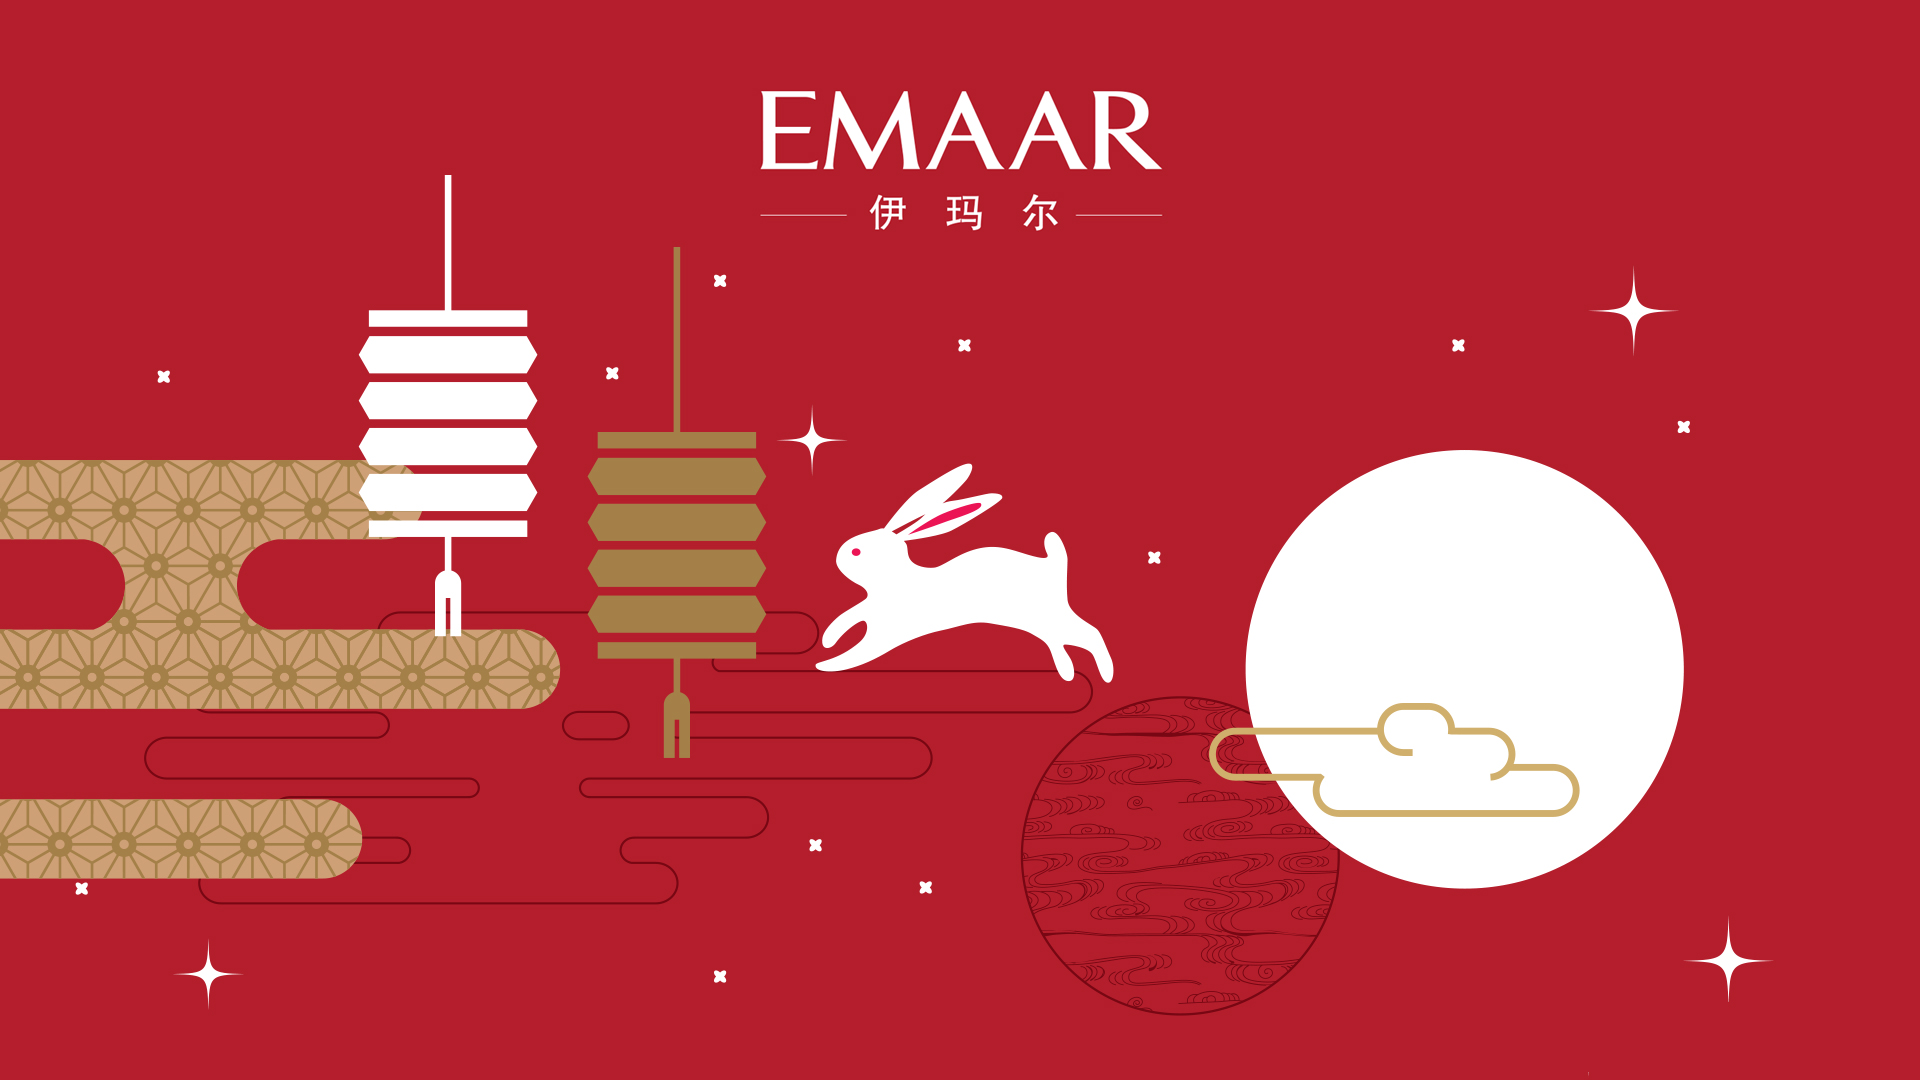 Emaar Launches 'Golden Month Offer' to Celebrate Chinese Mid-Autumn Festival and 'Golden Week' with Special Packages for Chinese Investors